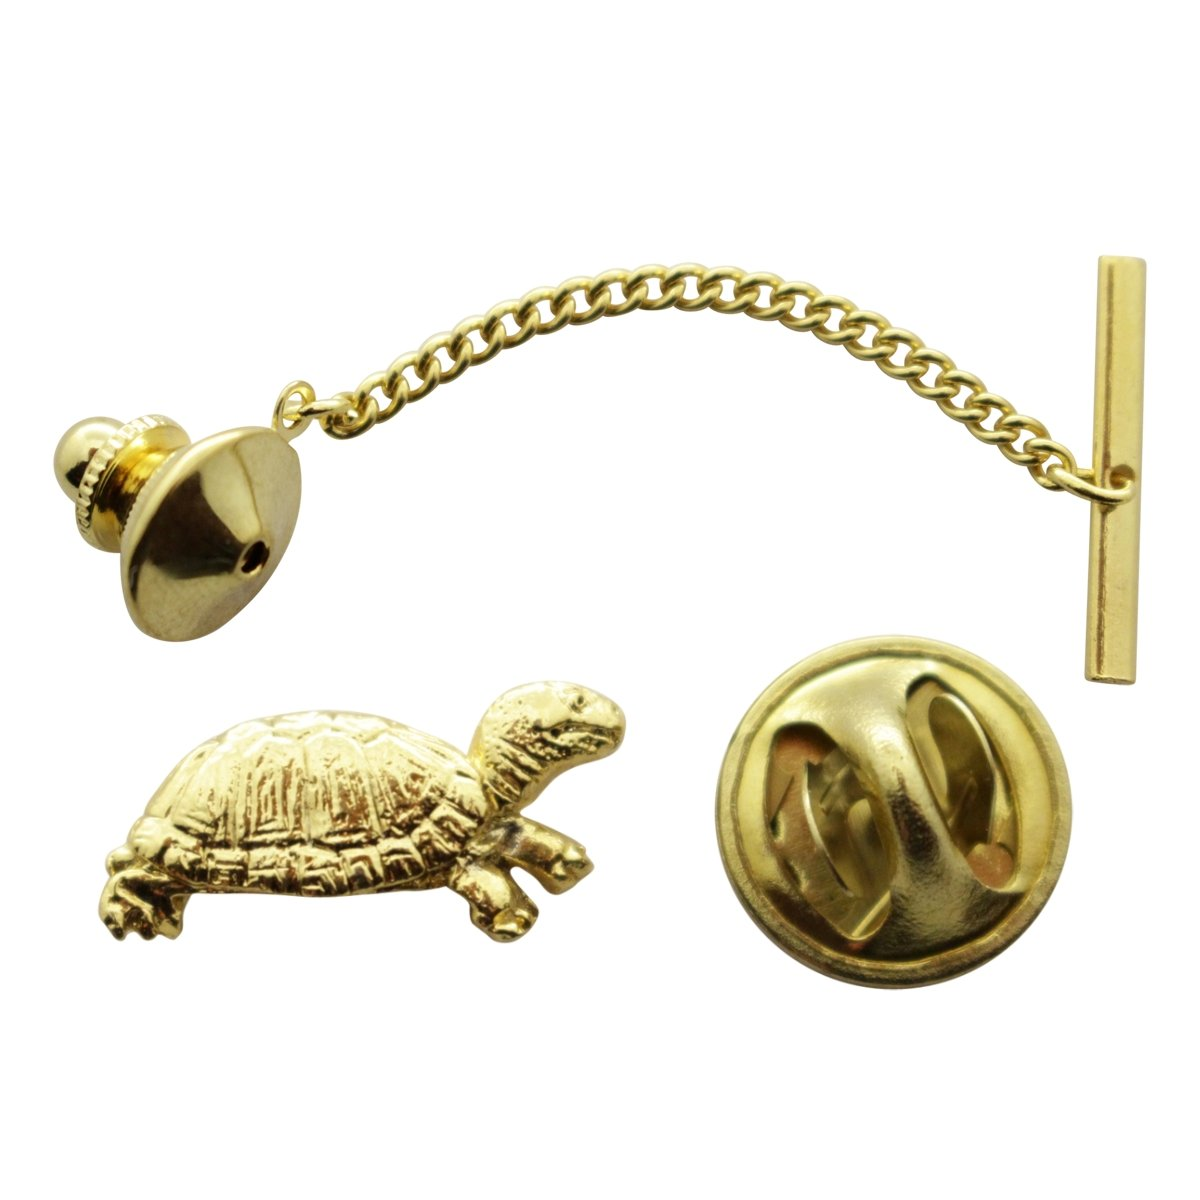 Box Turtle Tie Tack ~ 24K Gold ~ Tie Tack or Pin ~ Sarah's Treats & Treasures